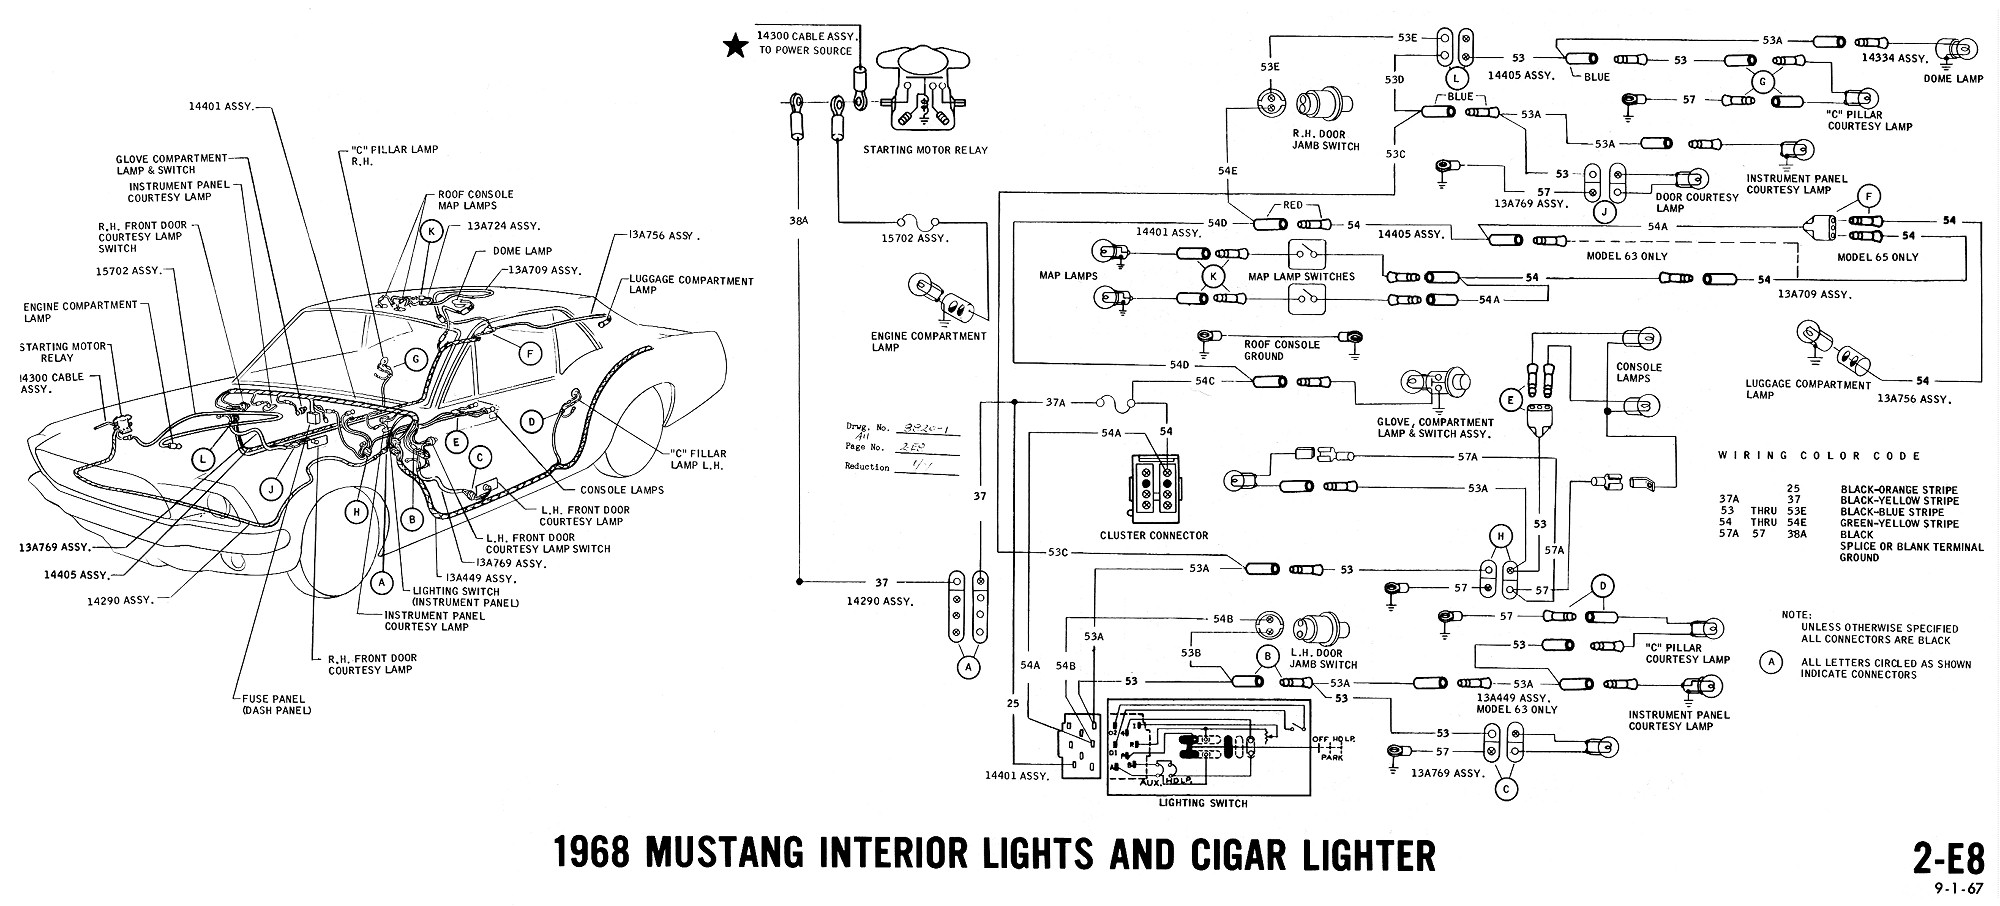 1990 Mustang Fuse Panel Diagram Wiring Library Box 1968 Electrical Diagrams